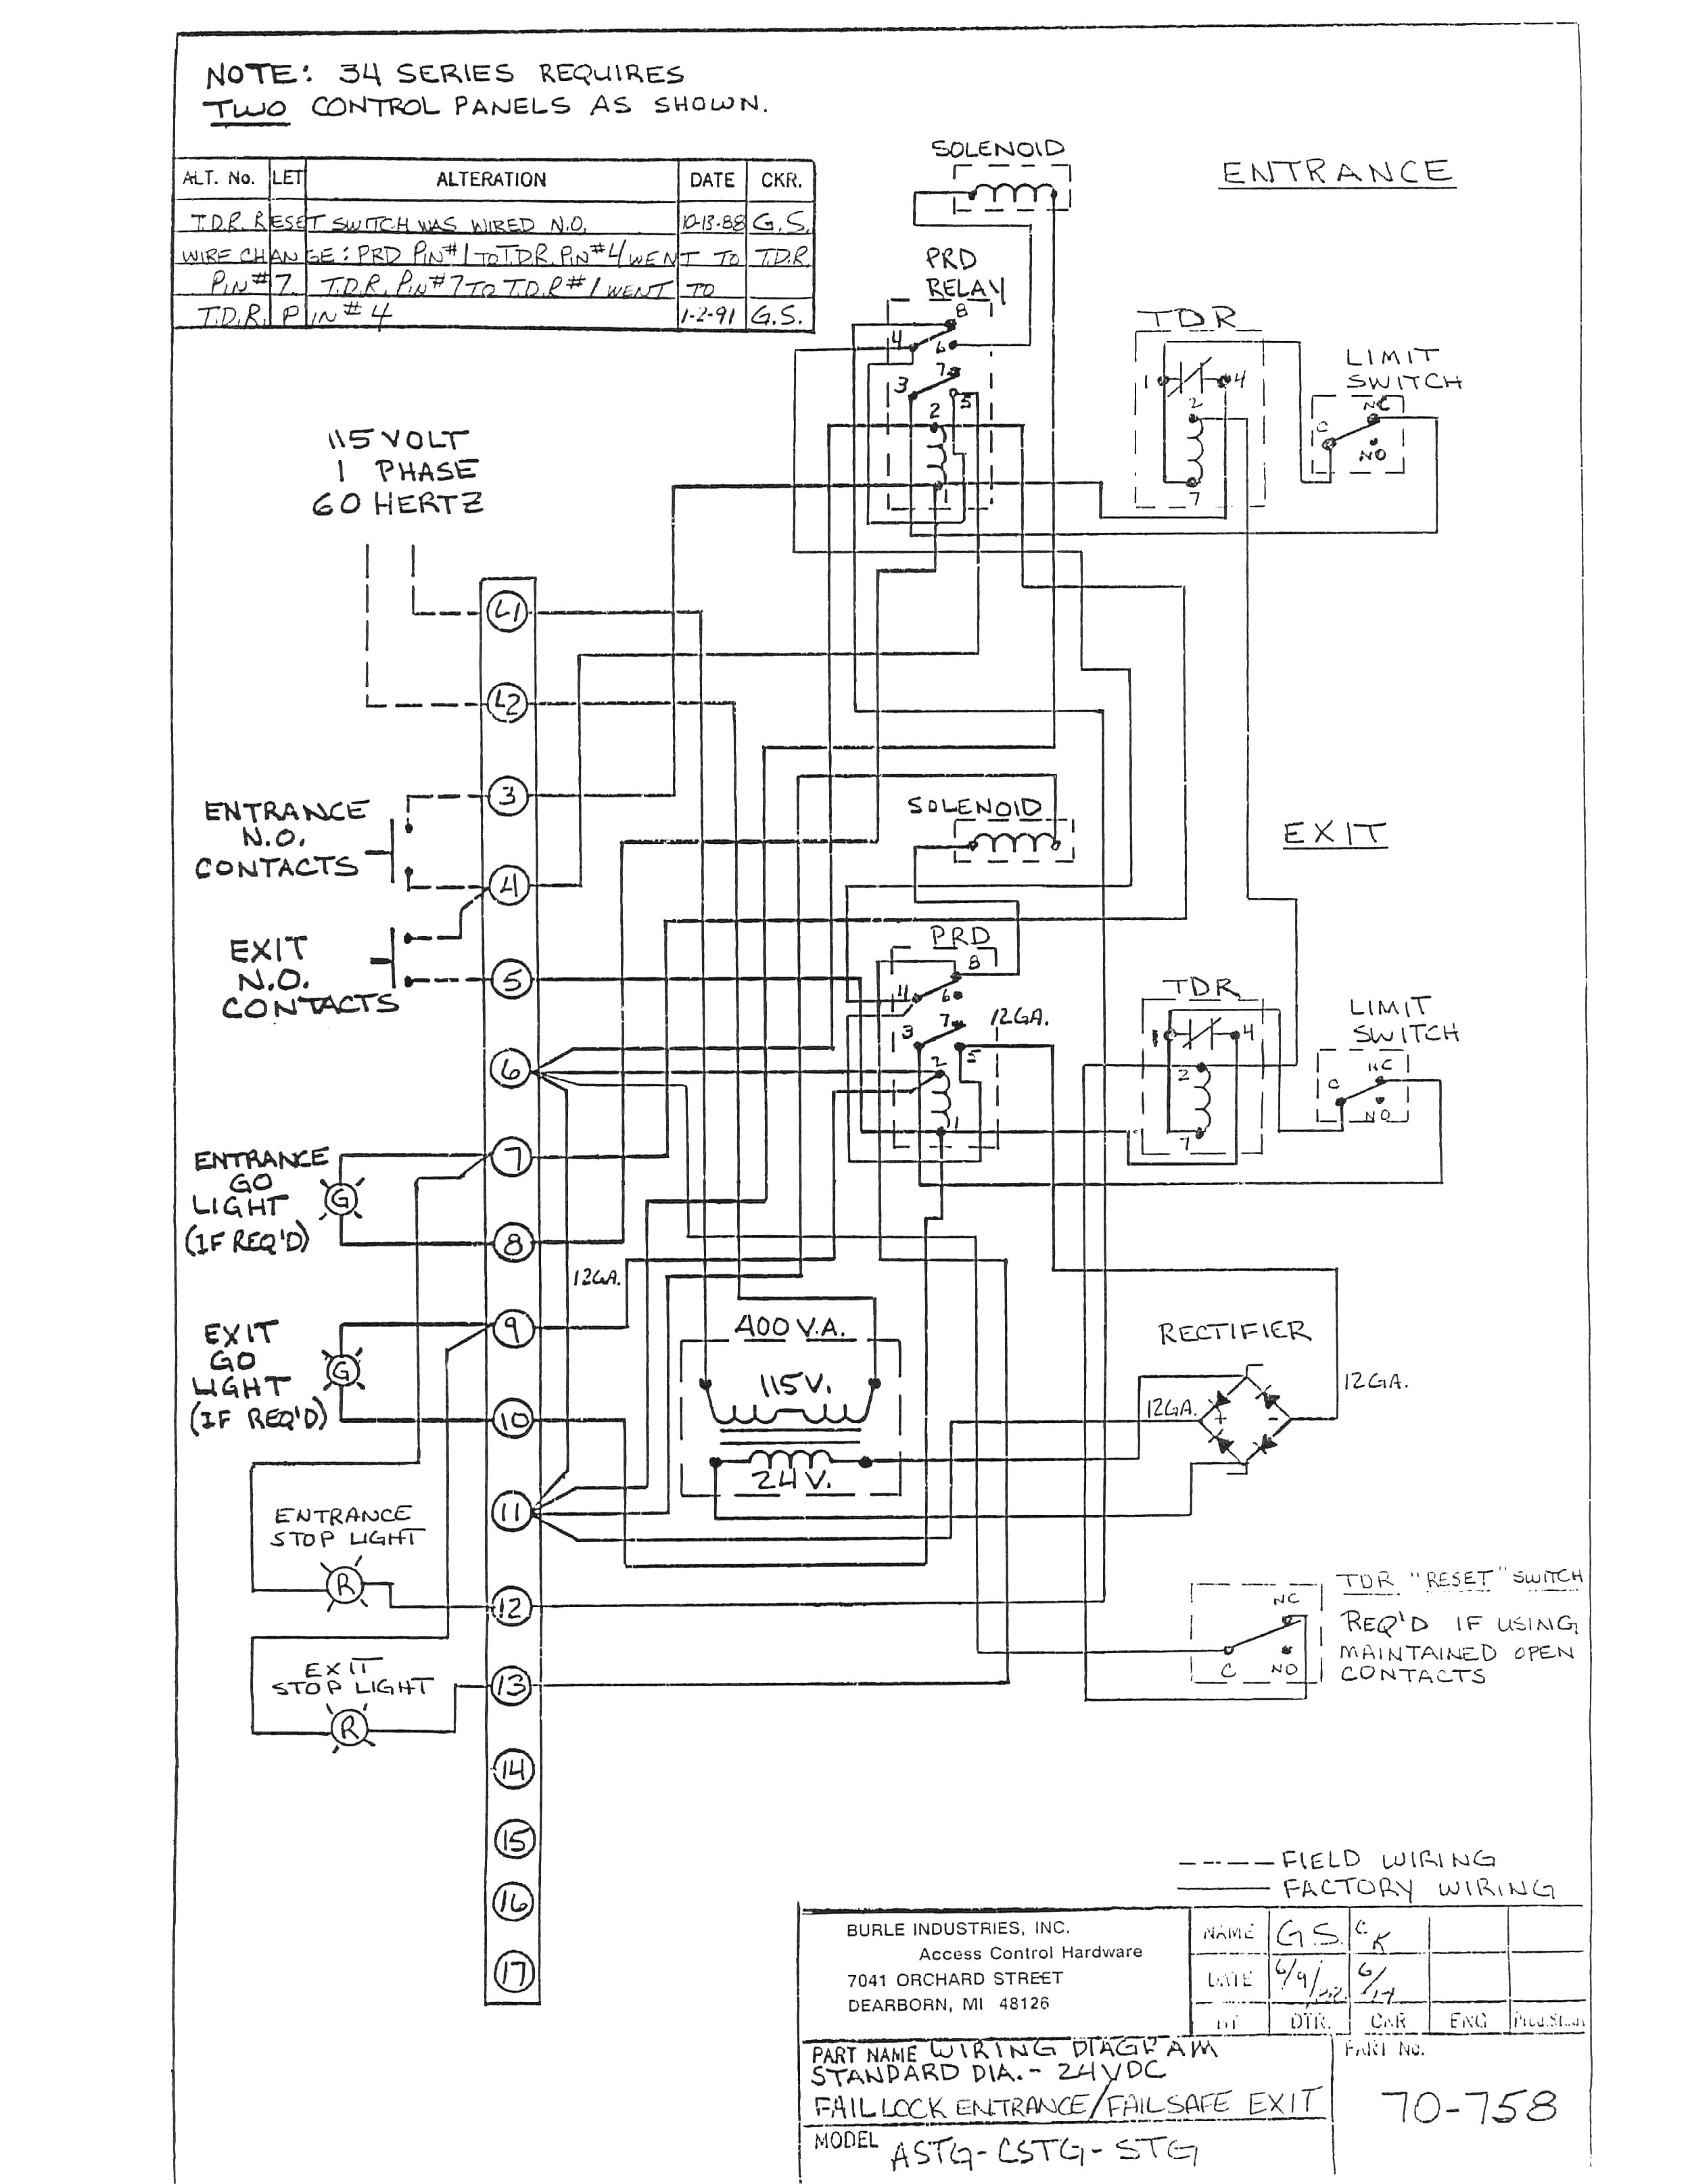 Hvac Wiring Diagram For Trane 1200 Xl - 1993 Mitsubishi Mirage Fuse And  Relay Boxes For 1 5 Liter - fisher-wire.los-dodol.jeanjaures37.fr | Hvac Wiring Diagram For Trane 1200 Xl |  | Wiring Diagram Resource